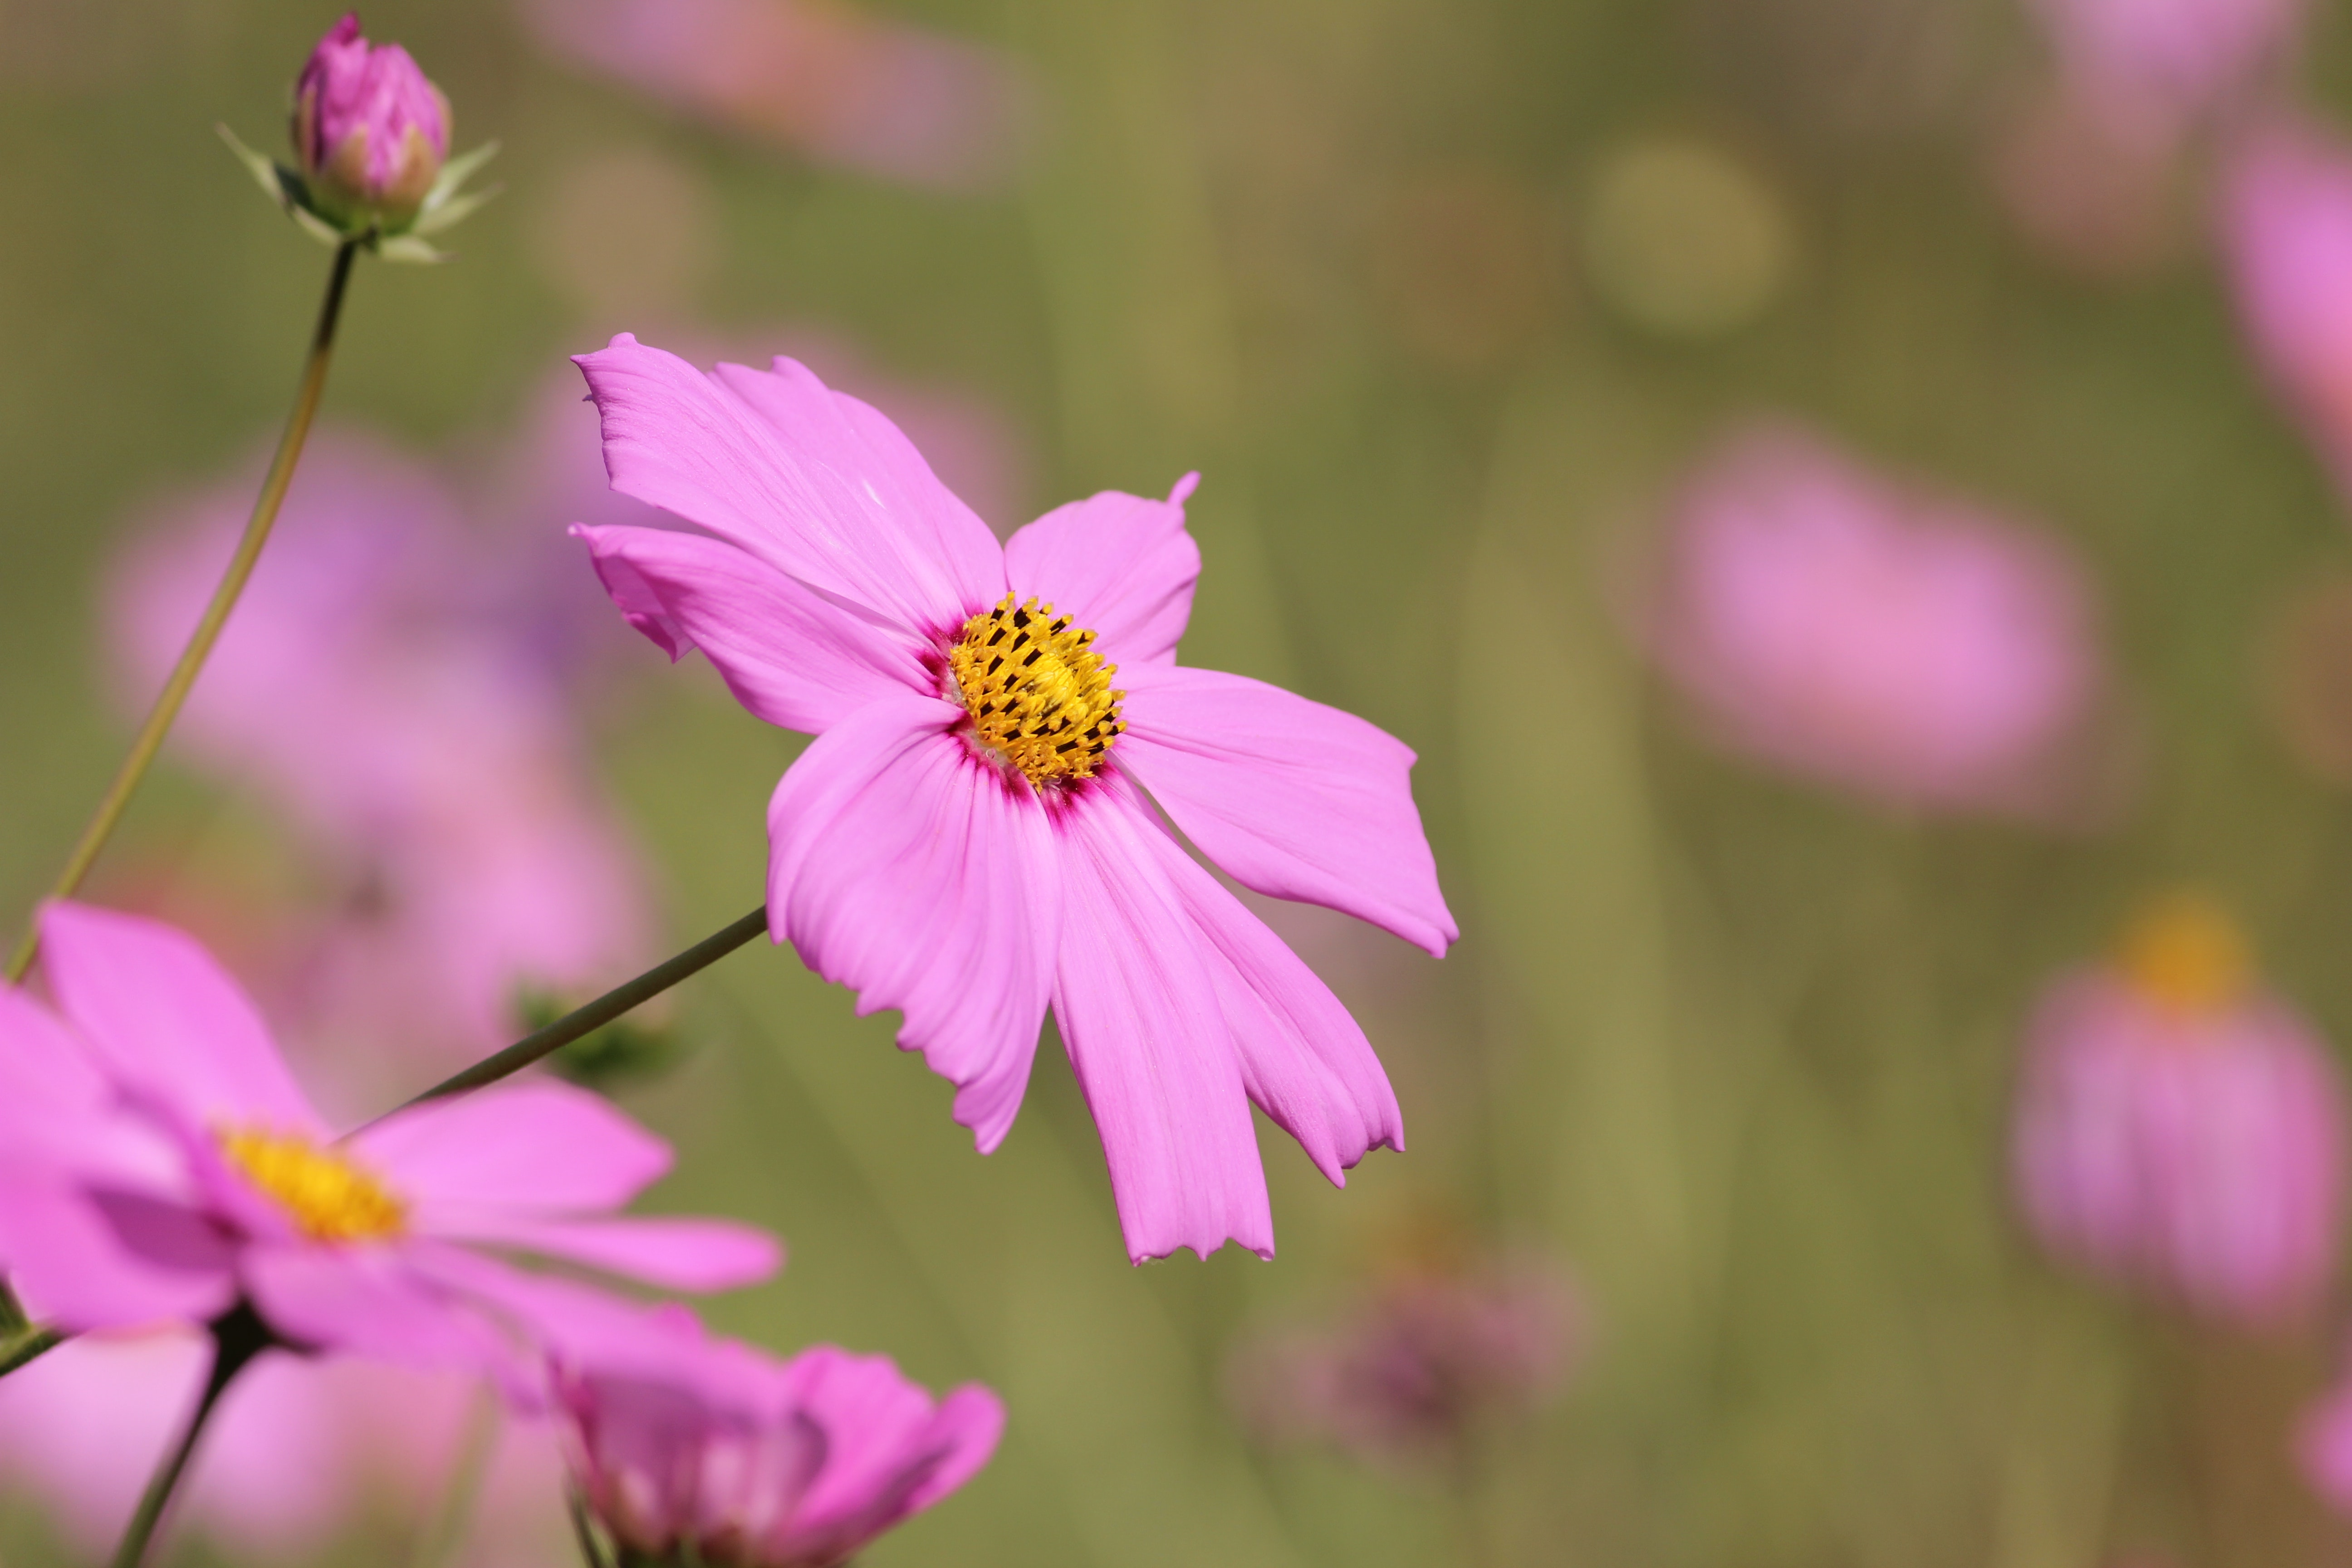 Pink Daisy Flower Selective Photography, Beautiful flowers, Flowers, Pink, Petals, HQ Photo